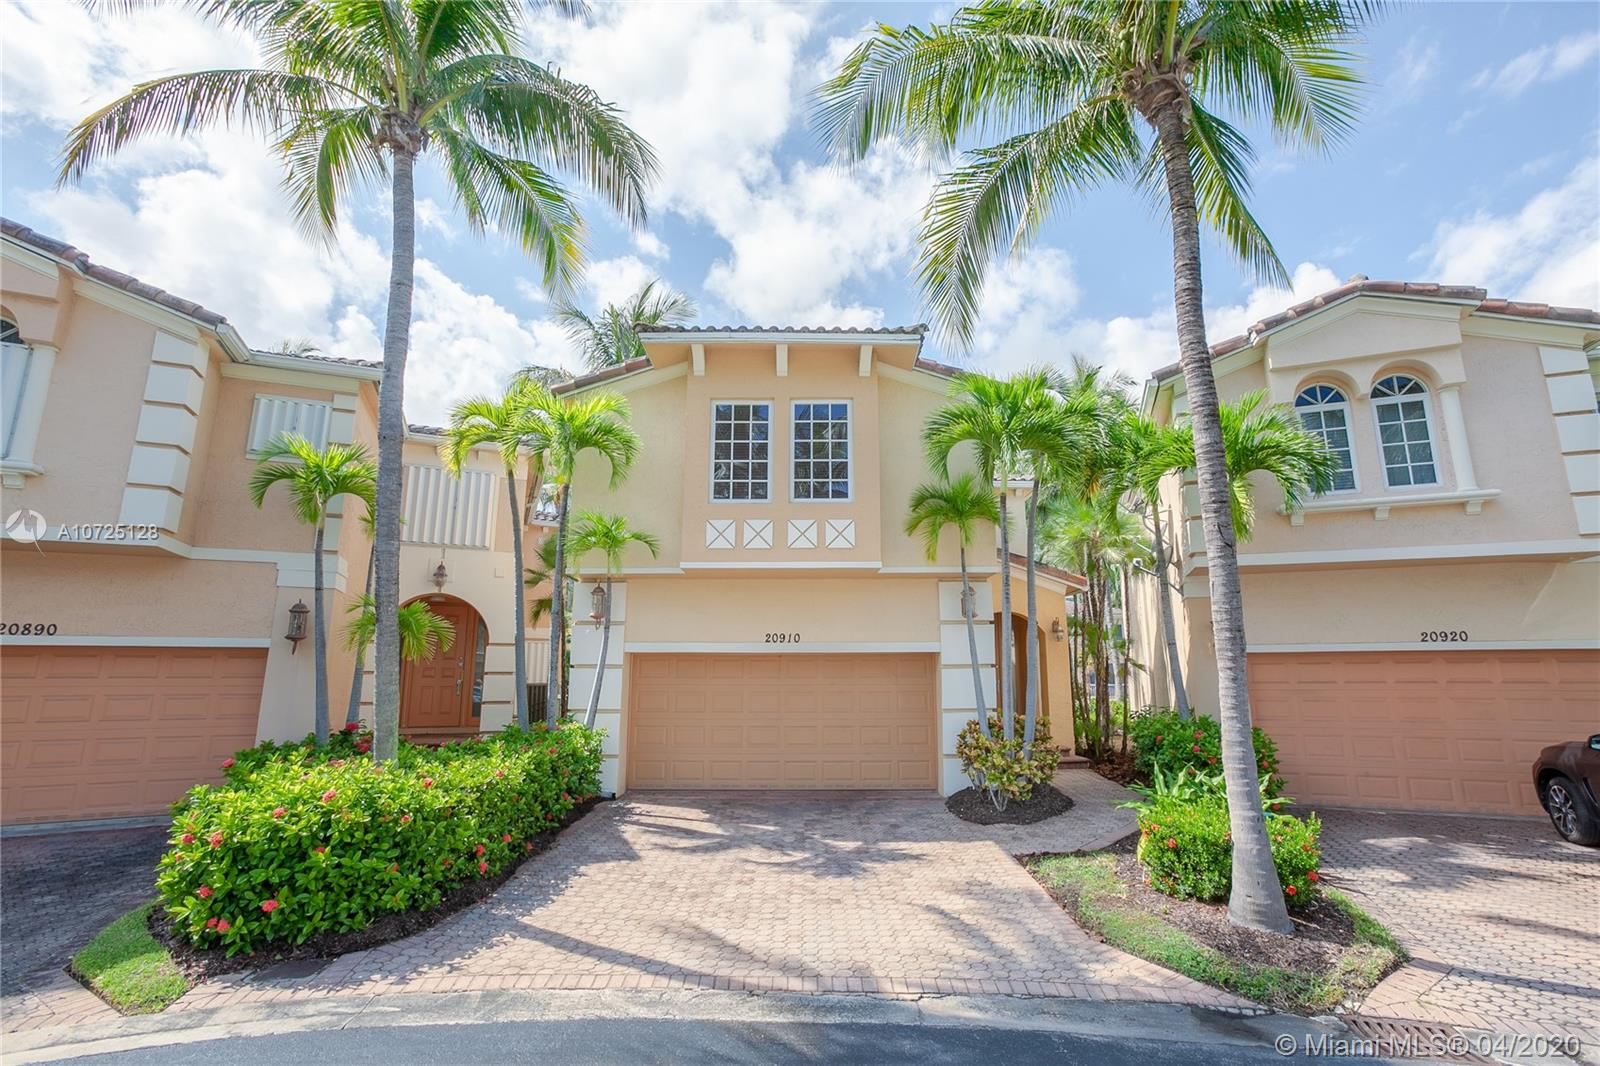 20910 NE 30 Pl.  For Sale A10725128, FL